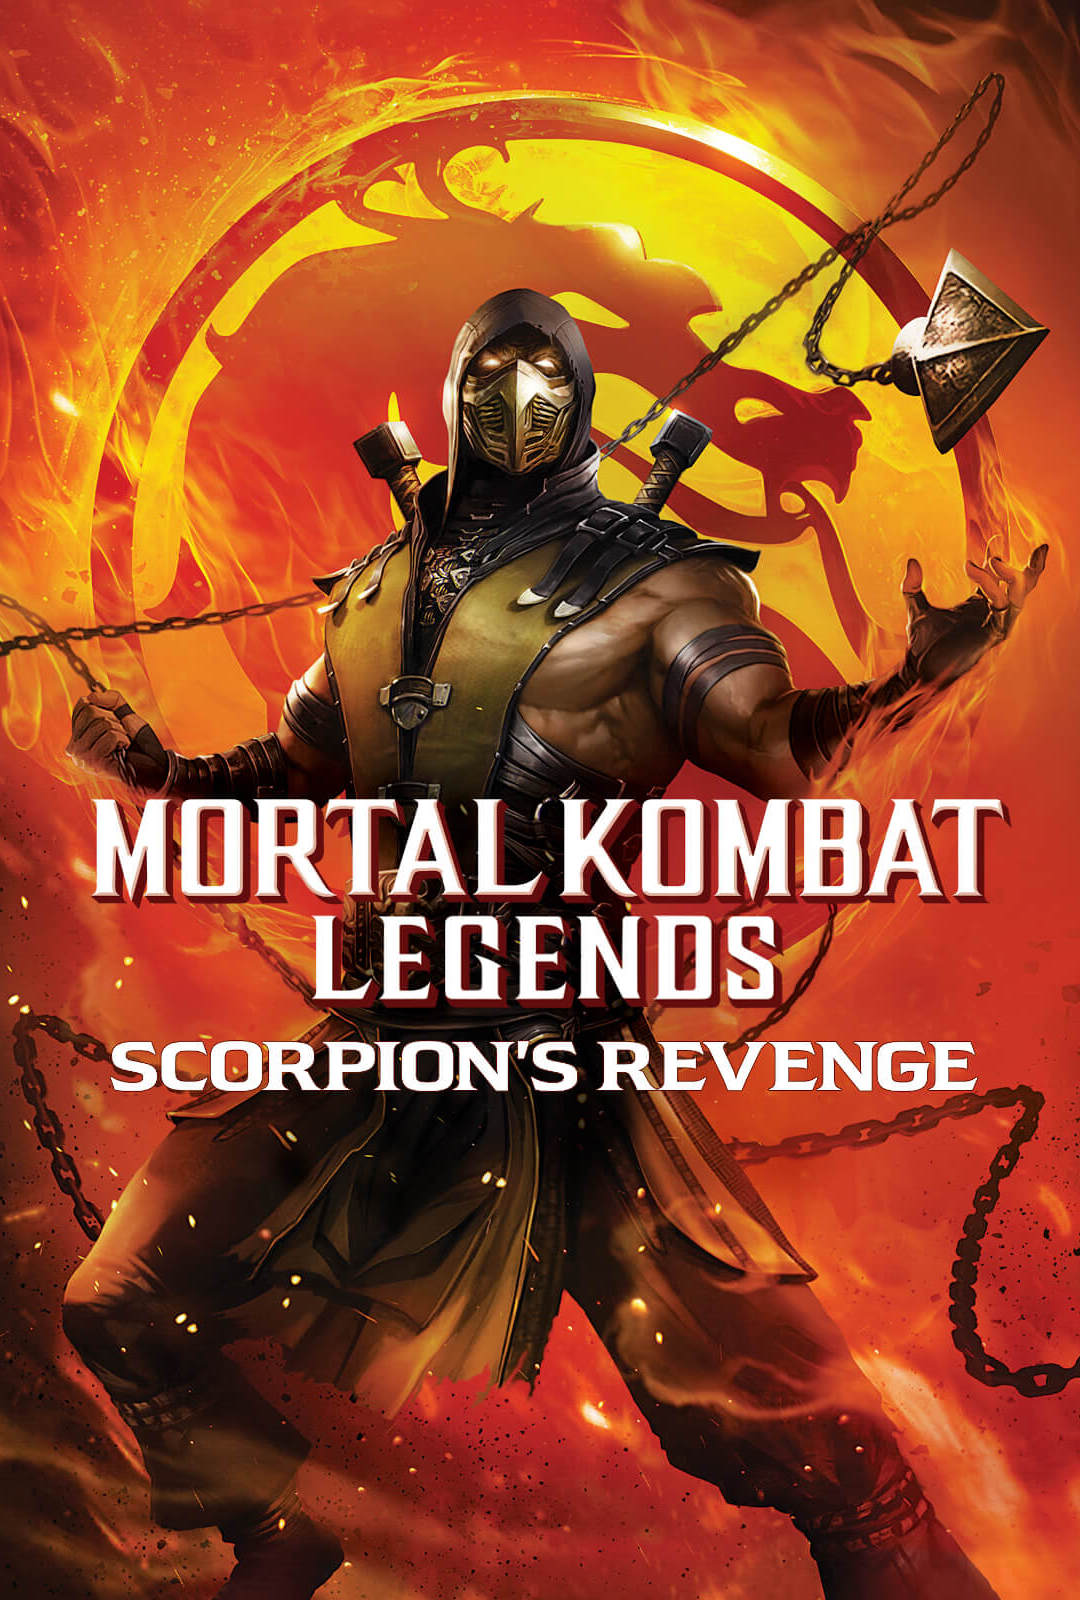 Mortal Kombat Legends: Scorpion's Revenge (2020) - IMDb